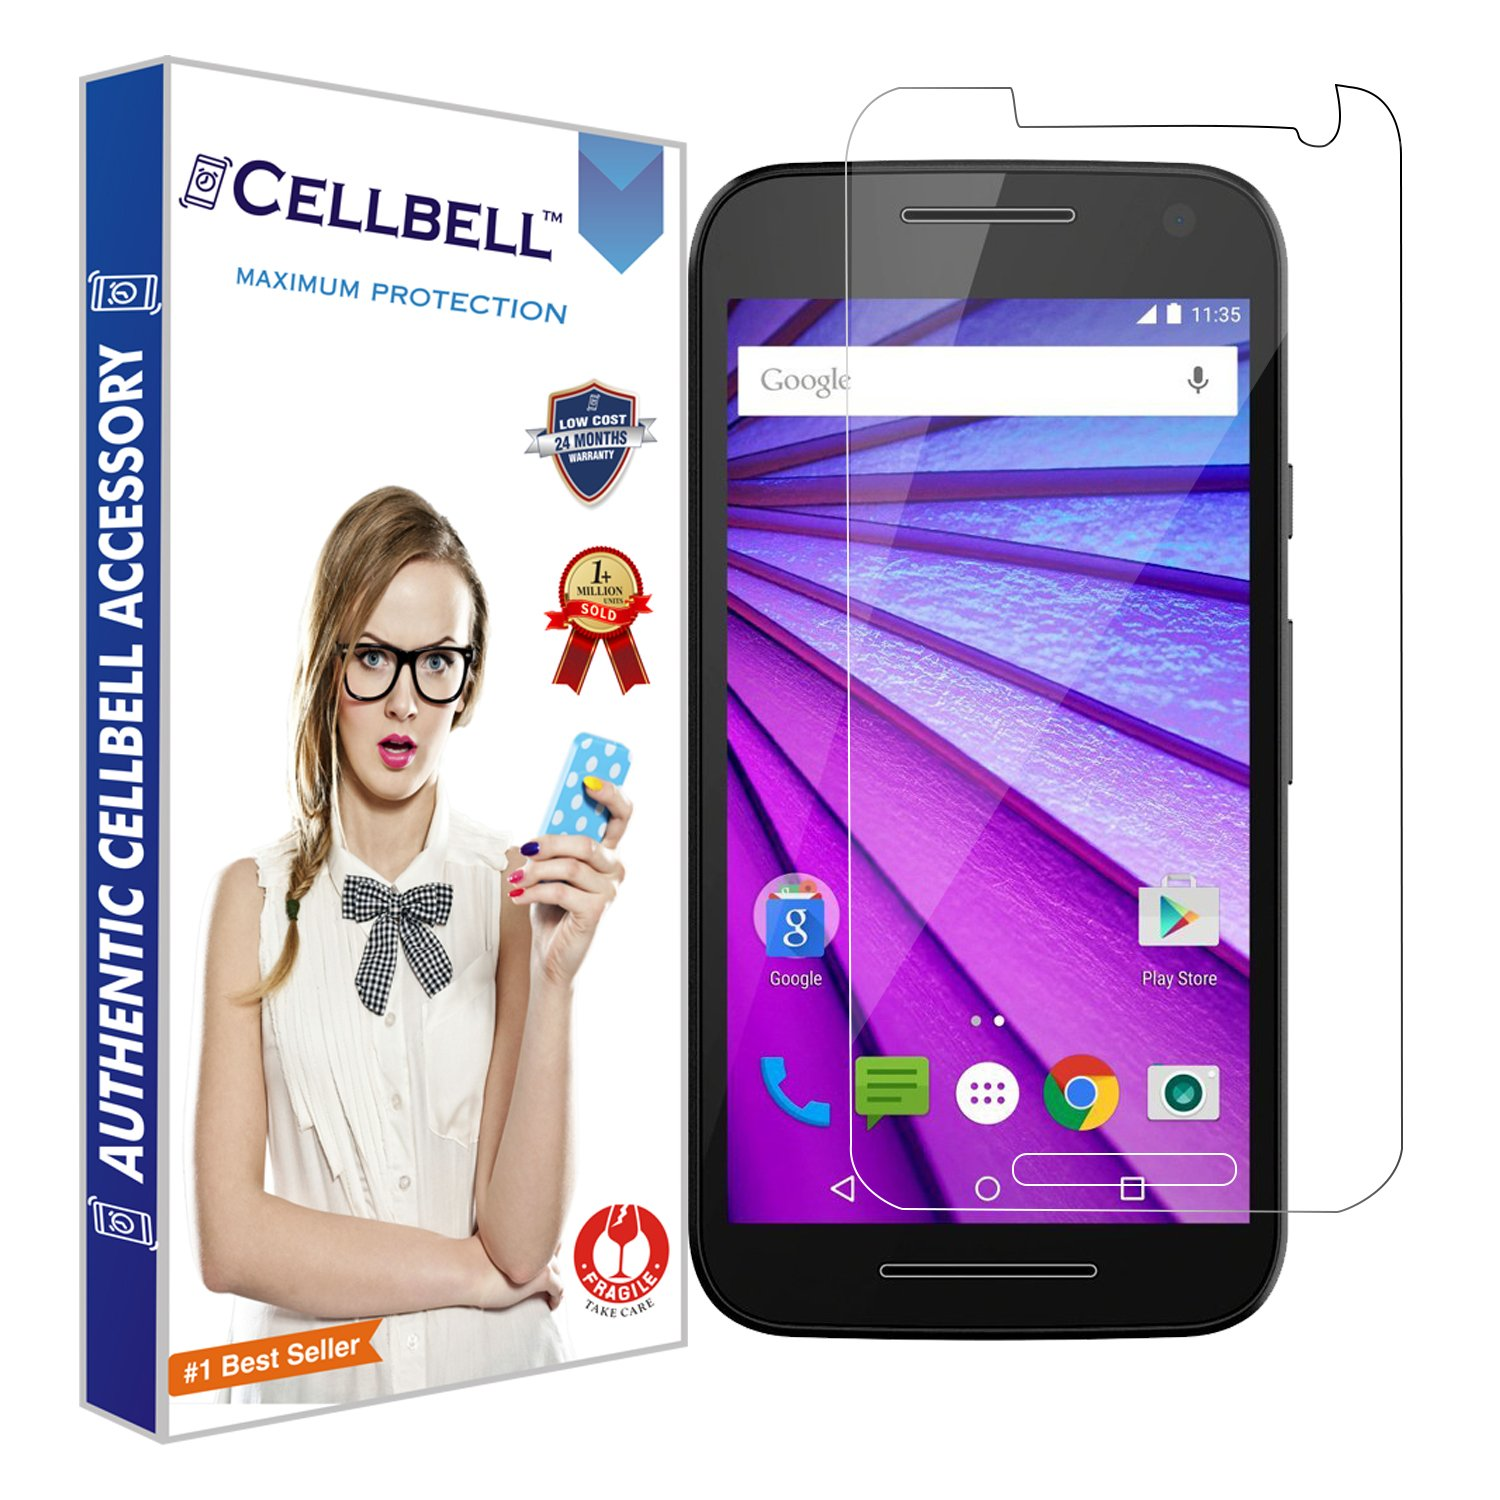 52bfda08d1b2 CELLBELL Premium Tempered Glass for Moto G3 3rd Gen with Prep Cloth  (Clear)  Amazon.in  Electronics